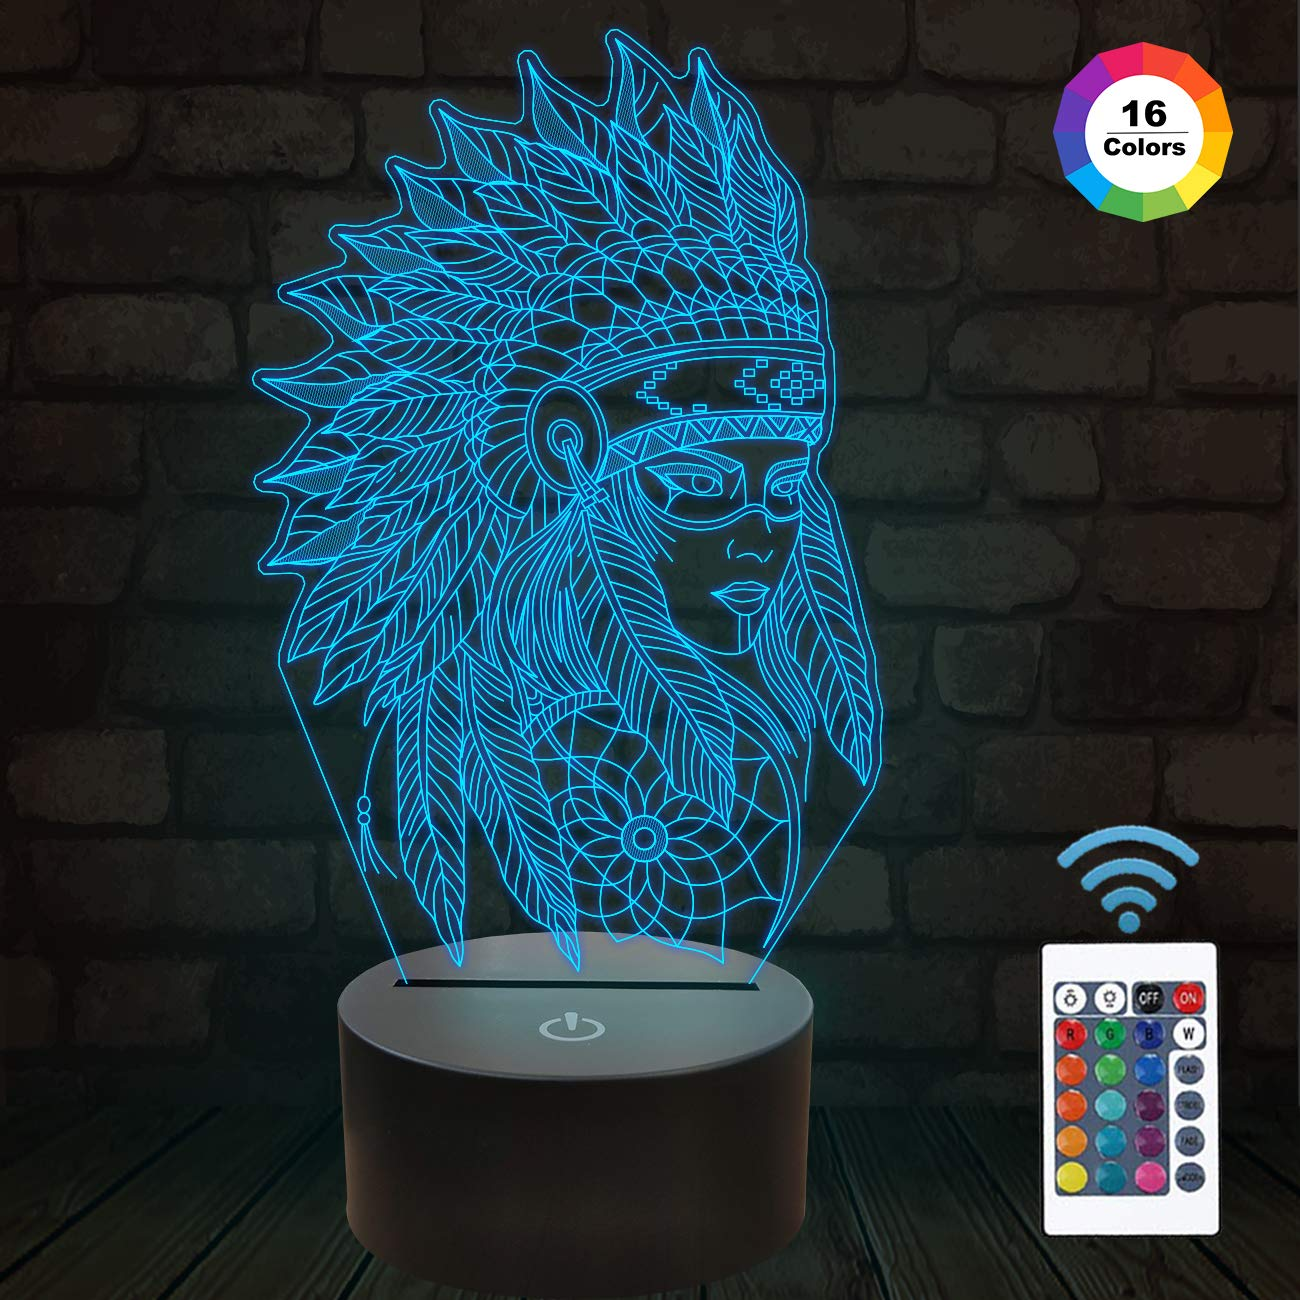 Native American Gifts, 3D Figure Night Light Illusion Lamp for Home Decor and Room Decorations, Creative Birthday Xmas Holiday Gifts with 16 Colors Changing & Remote Control & Dimmable Function